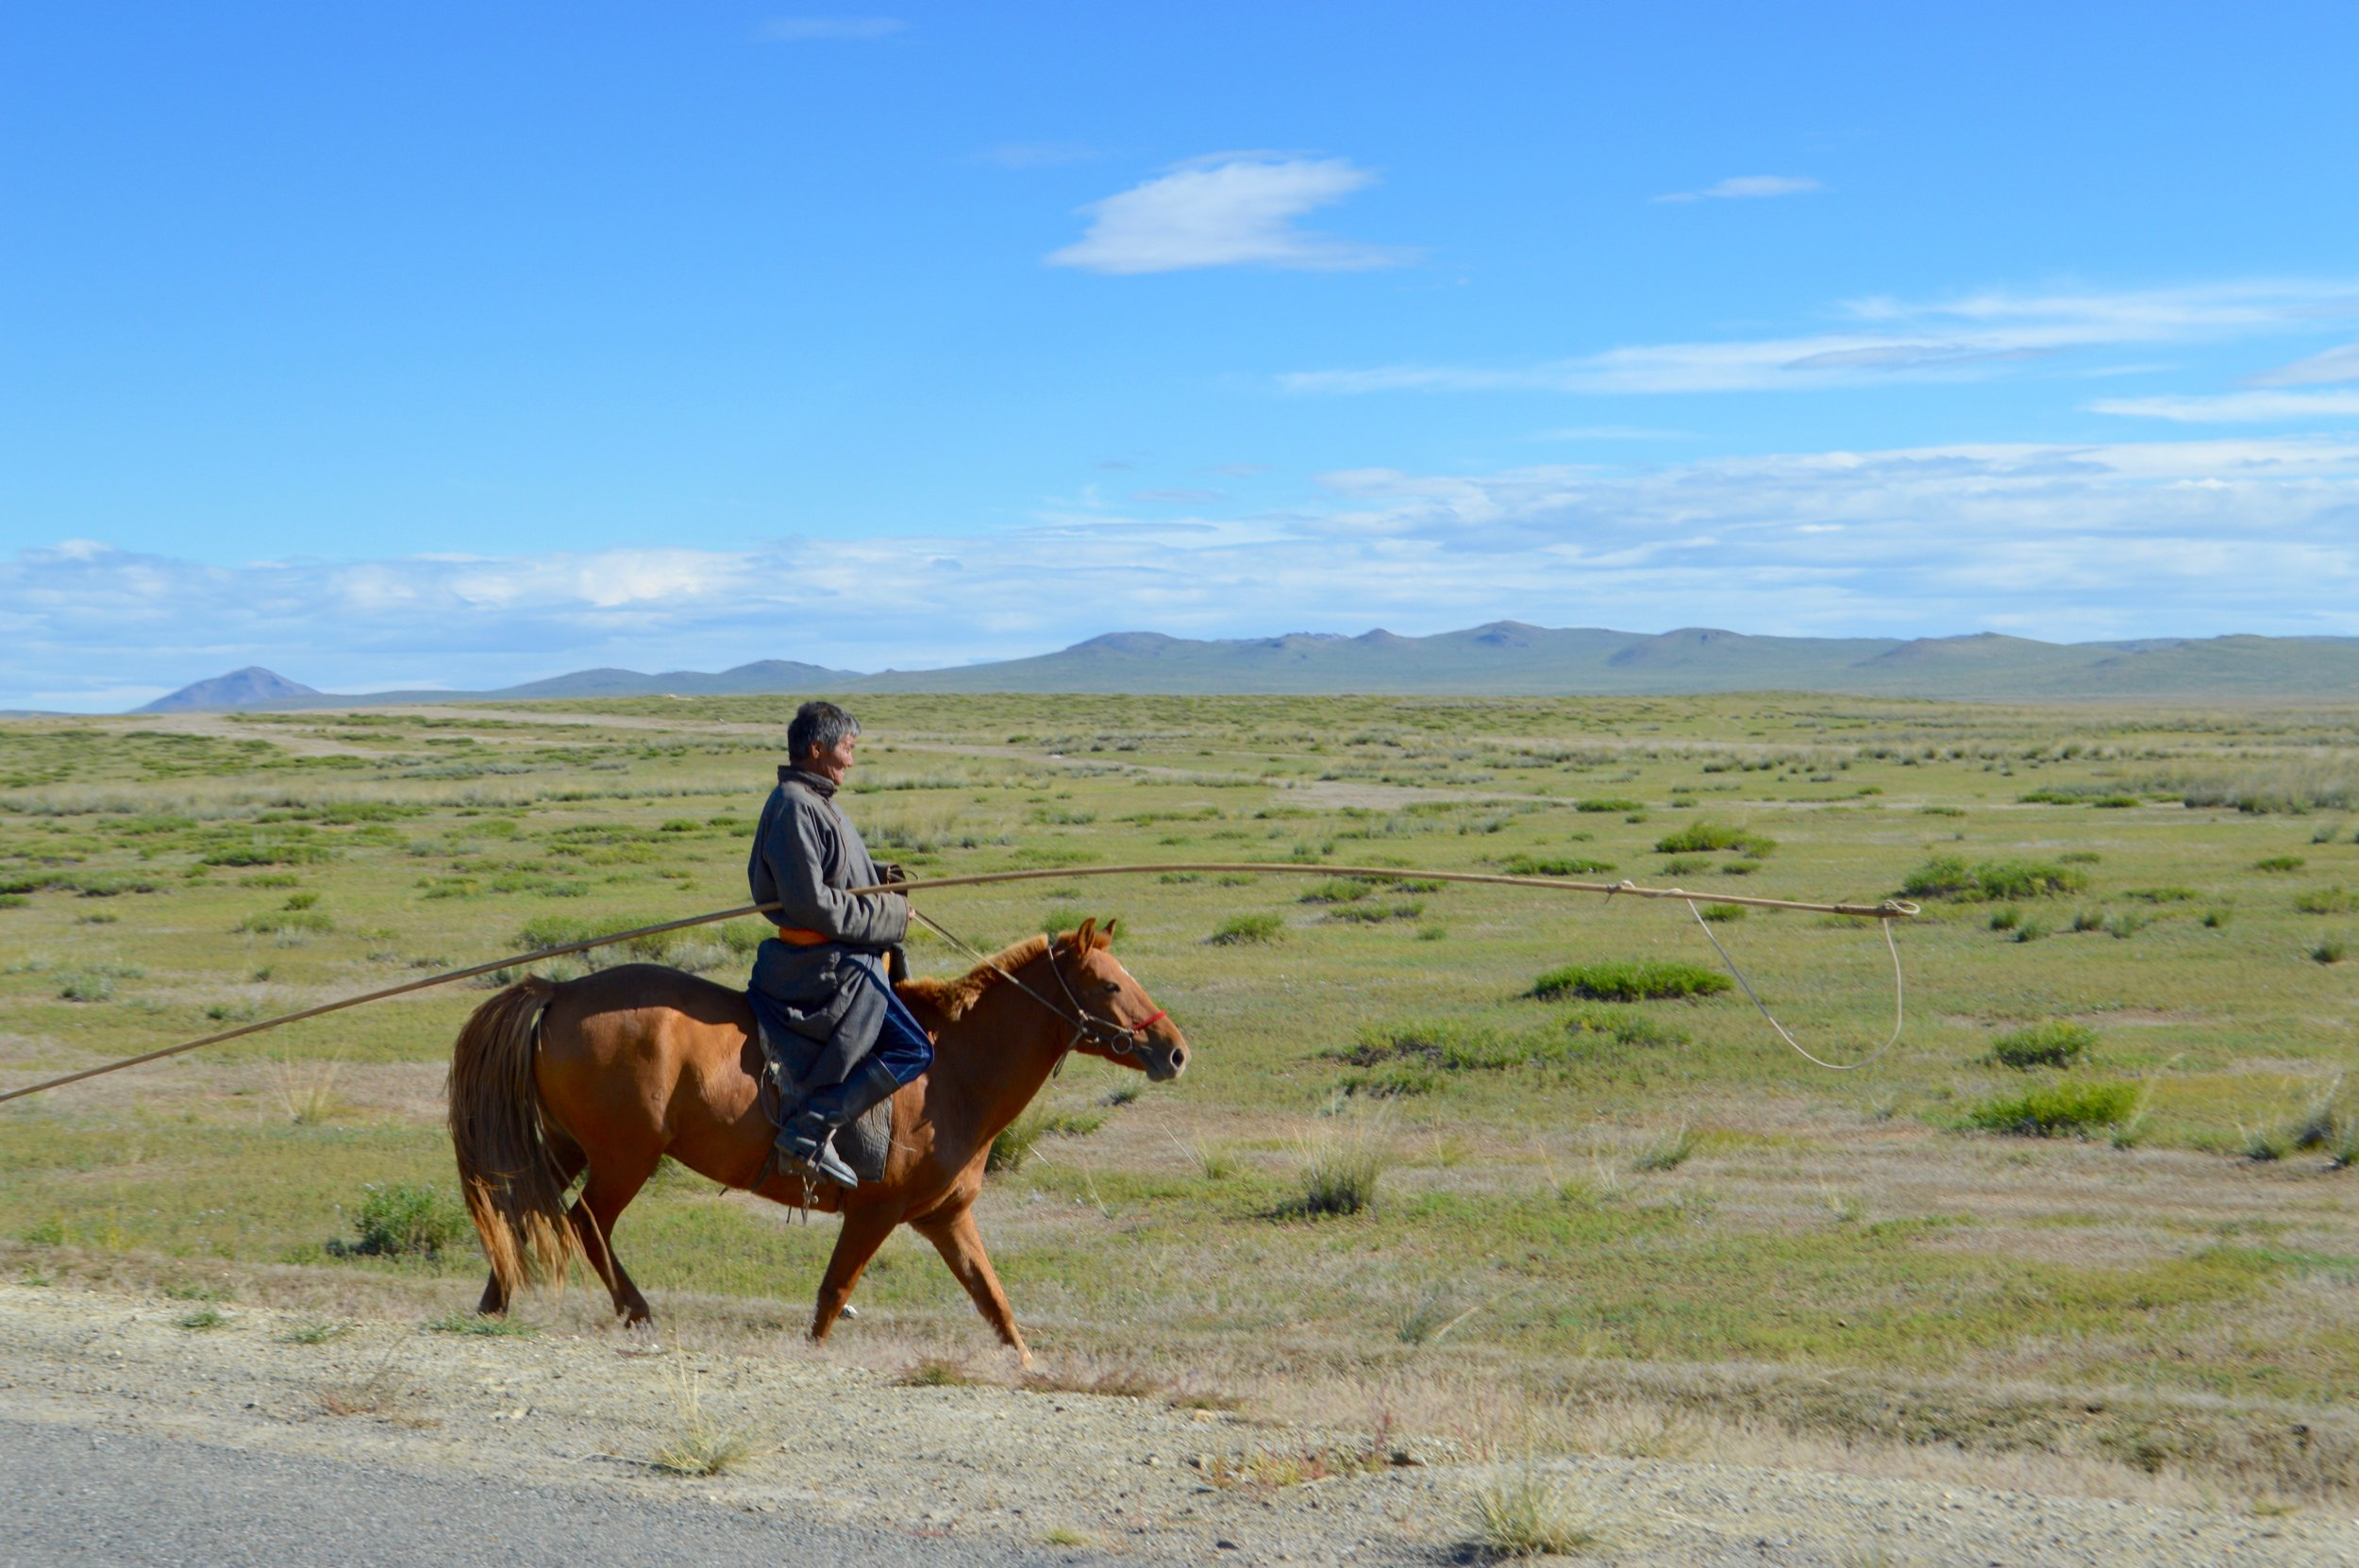 A Mongolian herdsman in traditional clothing on horseback